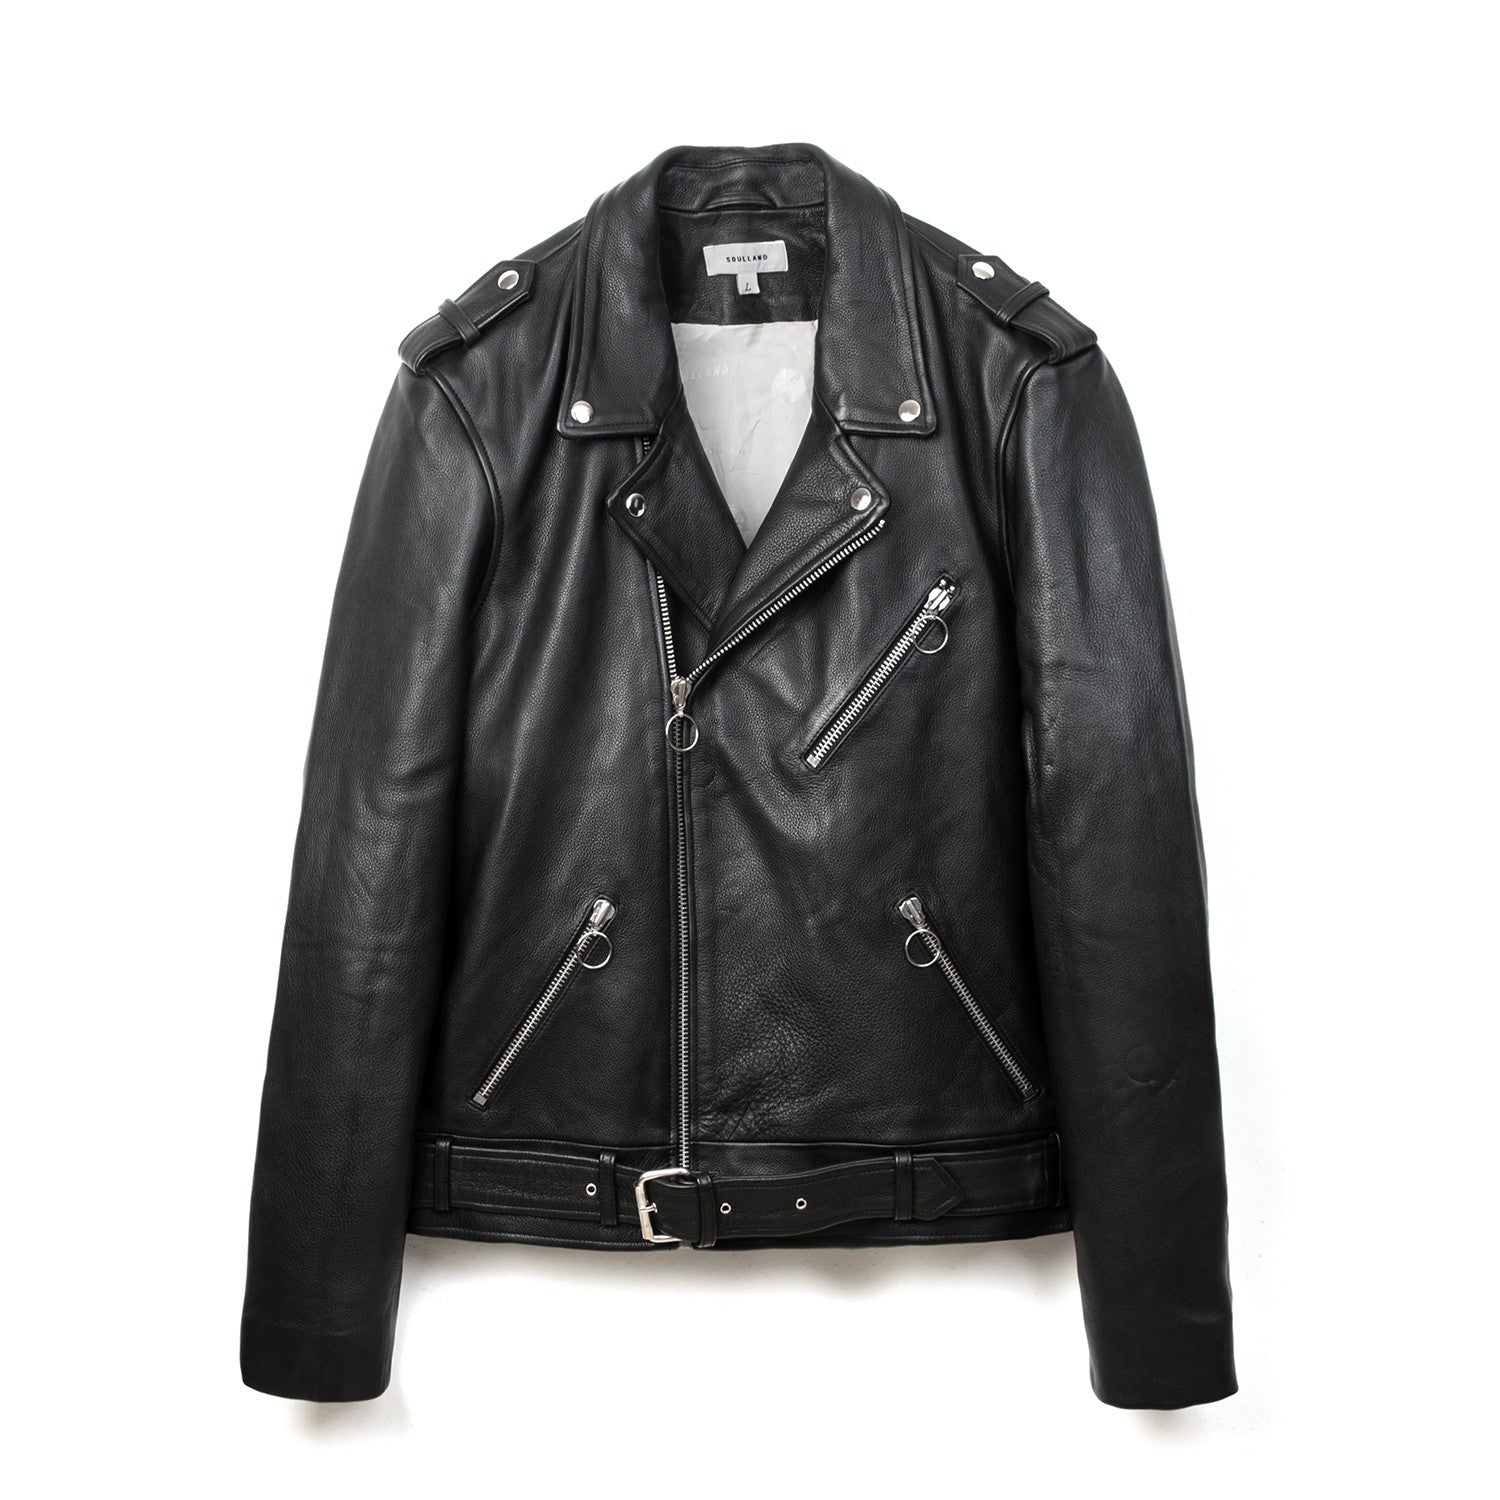 Soulland Richenback Heavy Leather Biker Jacket Black